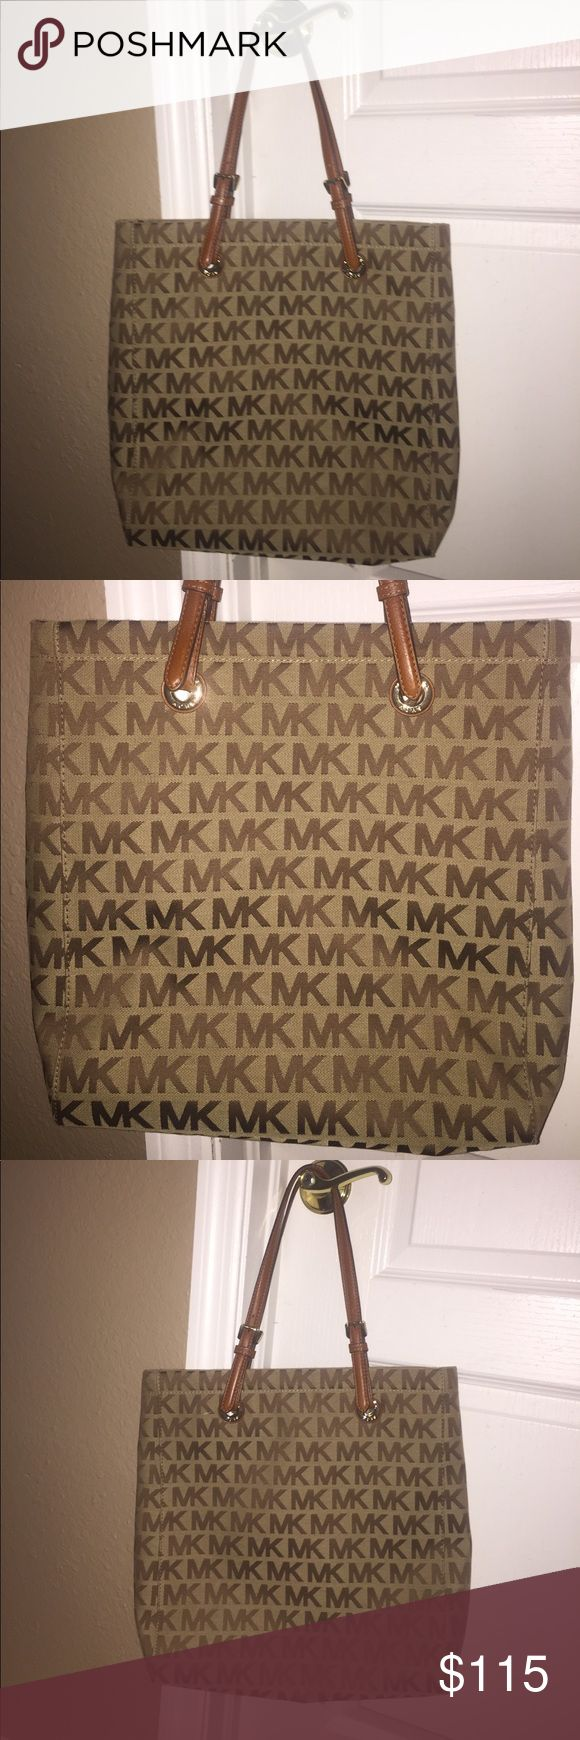 Spacious never used Michael Kors tote bag Would be great for travel or school bag. Make an offer, up for negotiation. Comes from a smoke and pet free home. Michael Kors Bags Totes